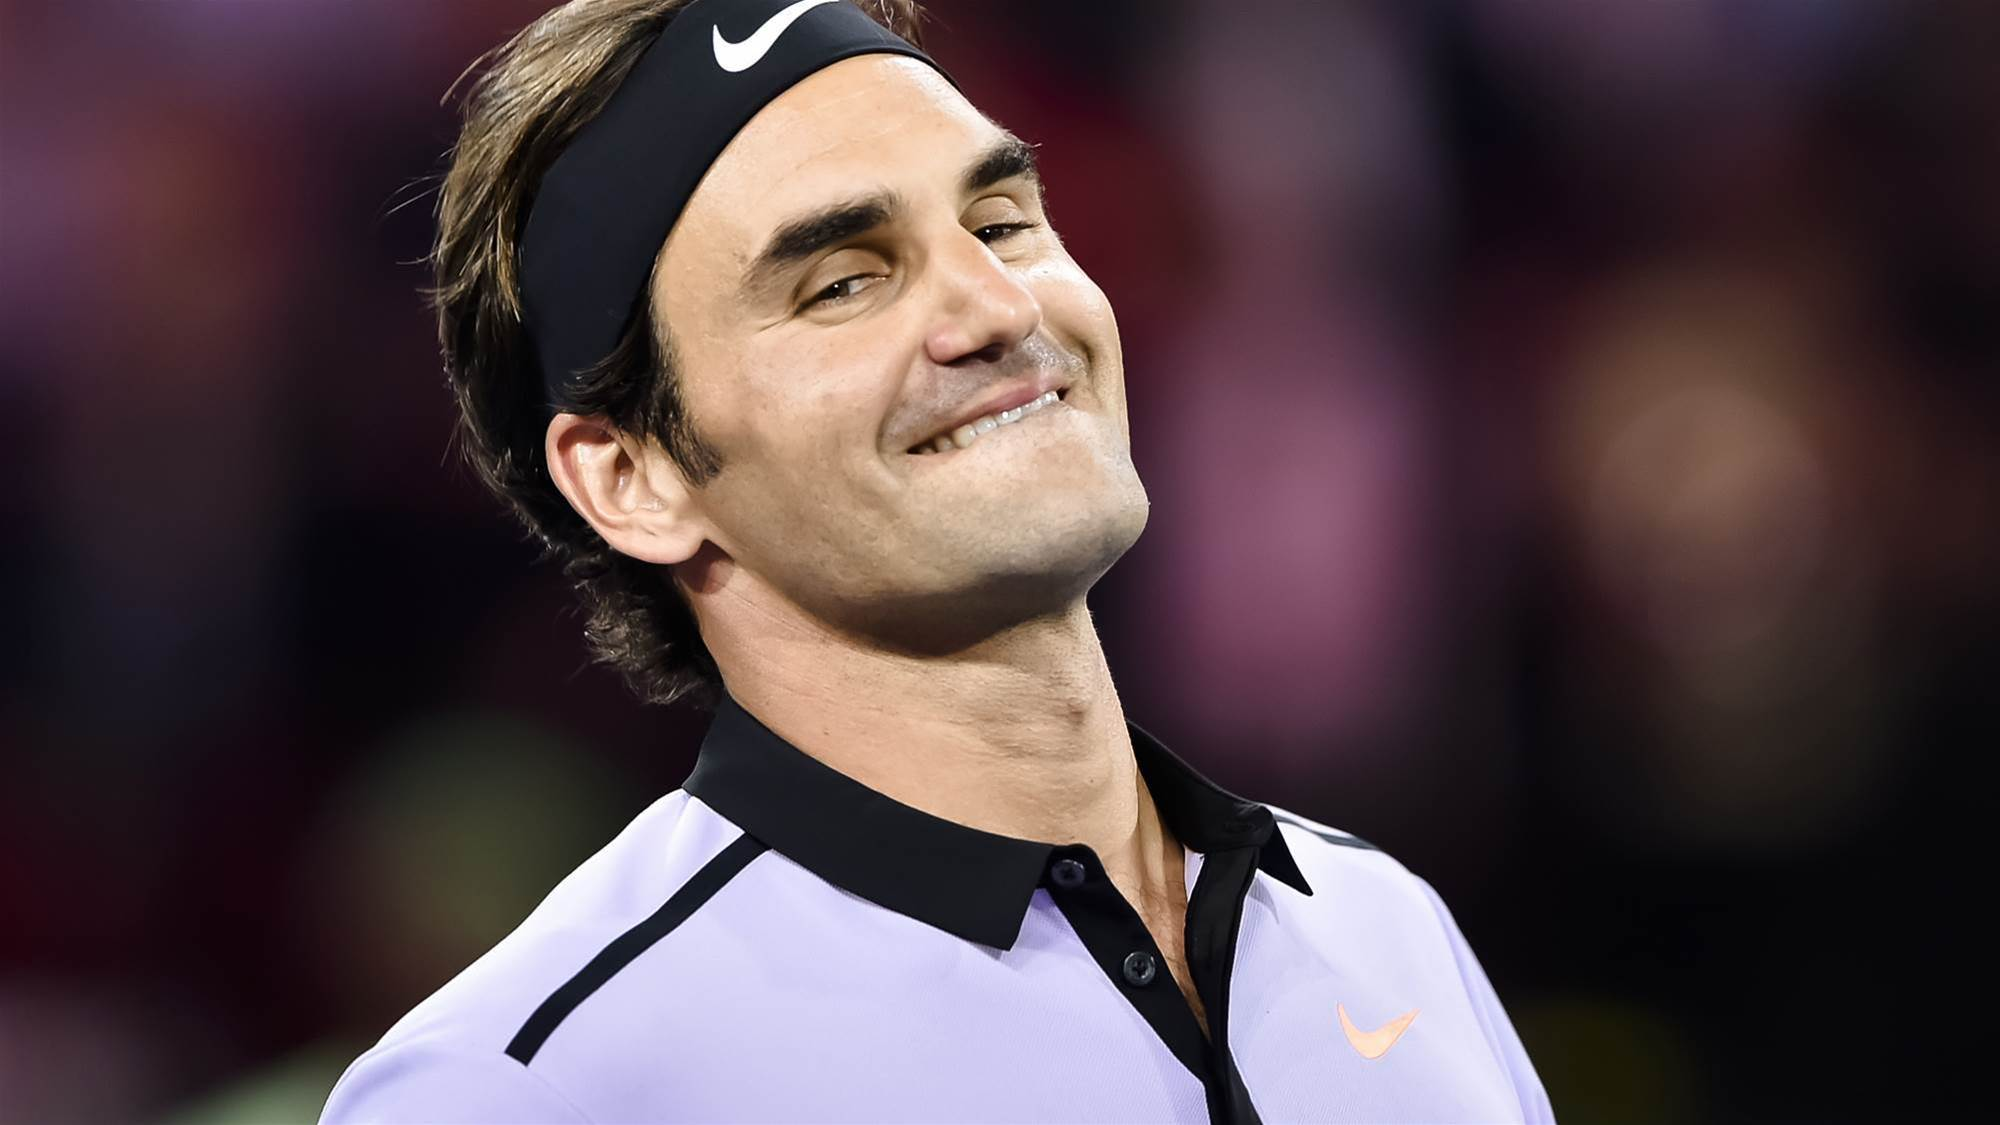 Federer undecided on French Open